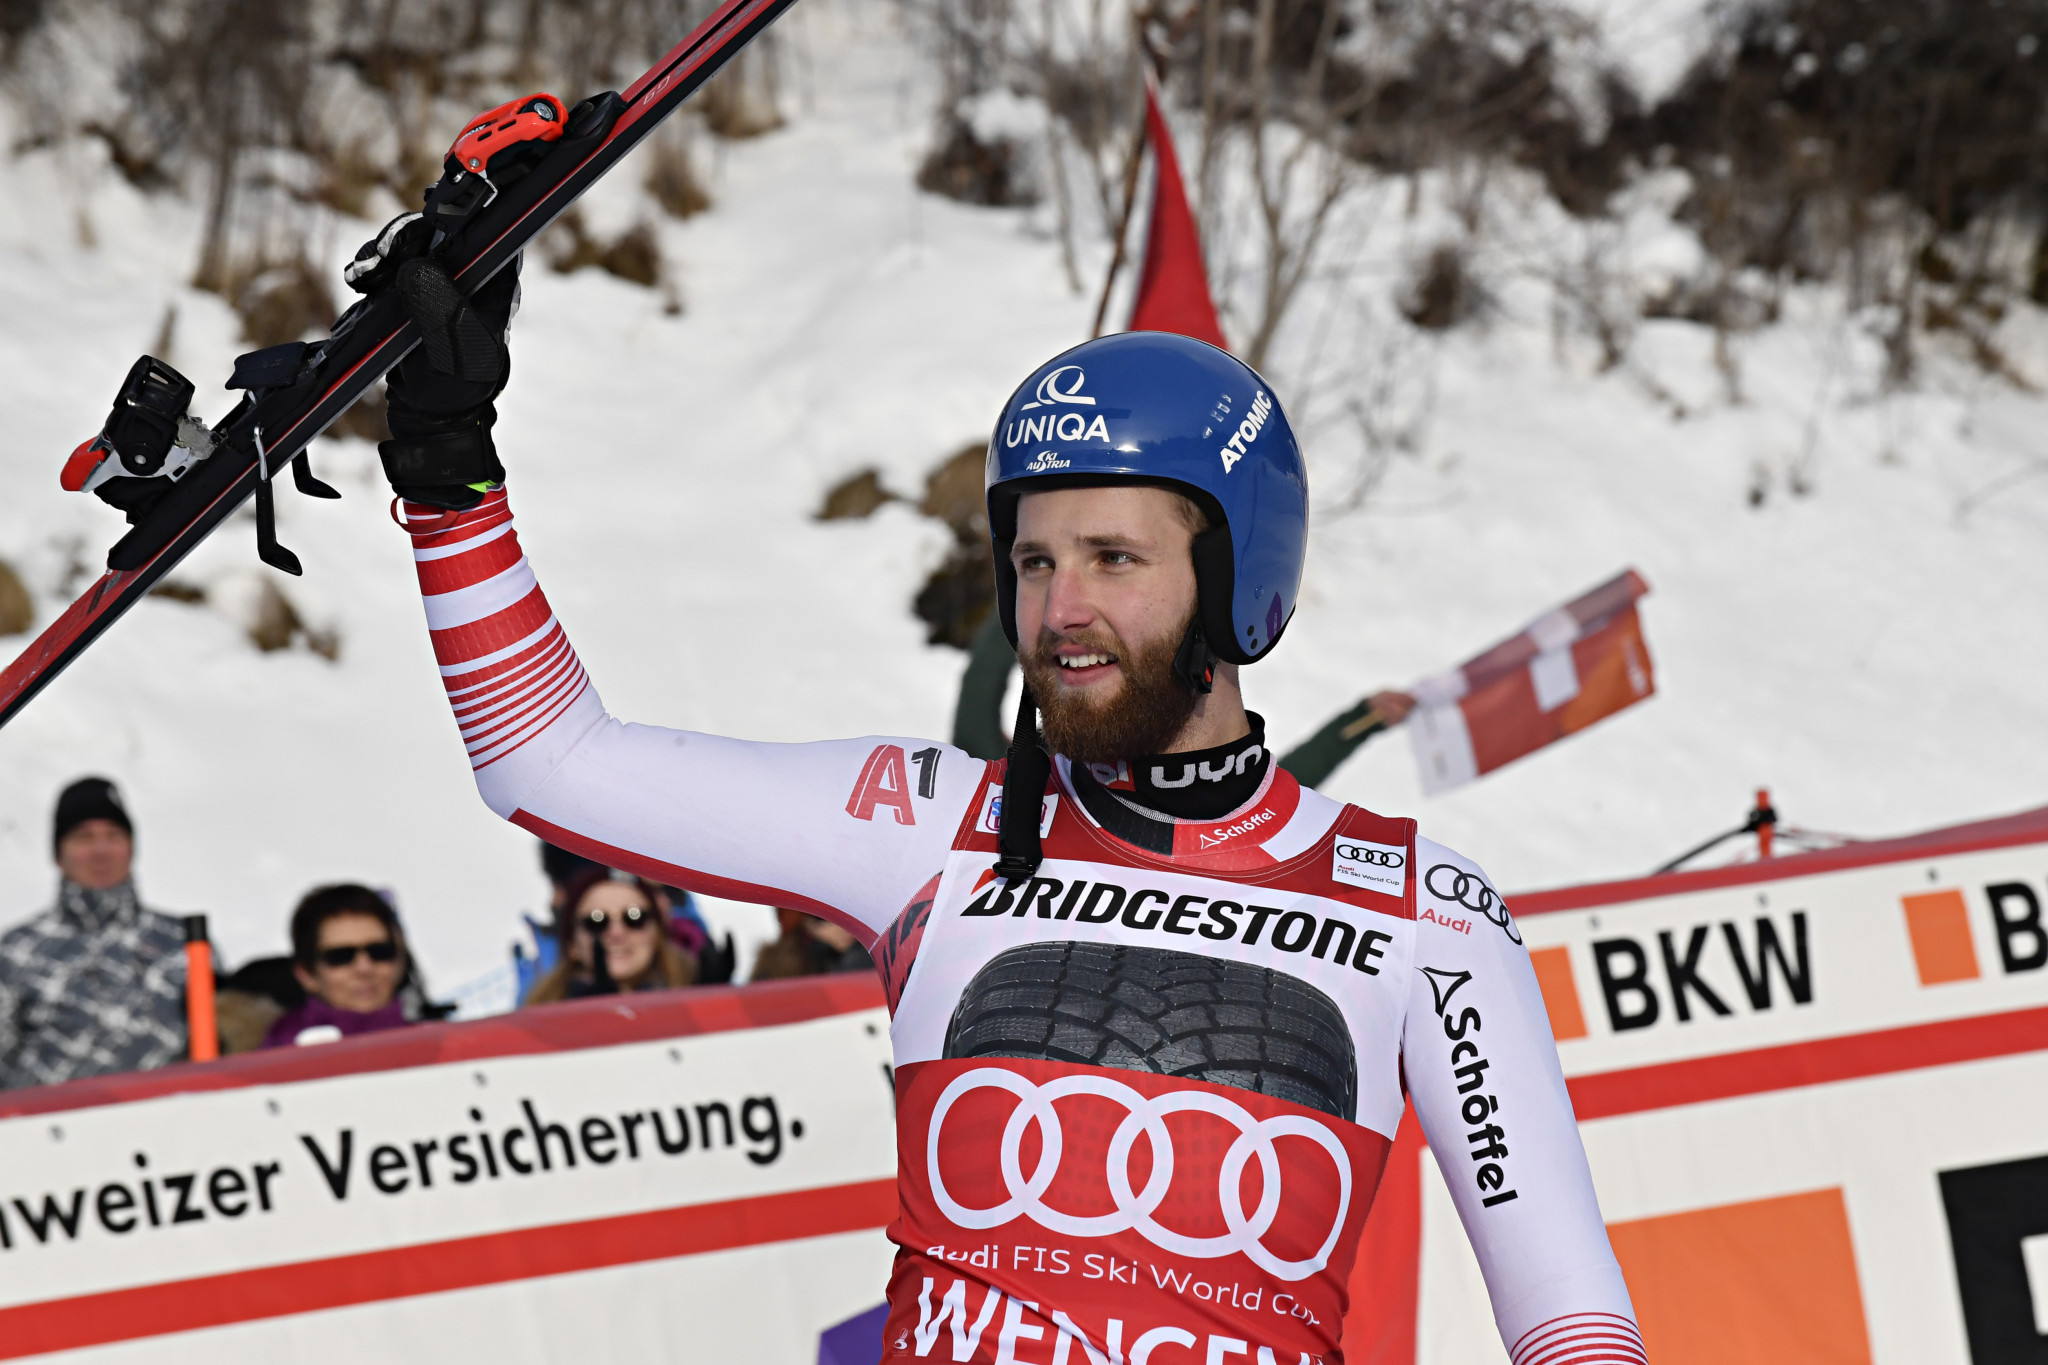 Schwarz and Siebenhofer claim first victories at FIS Alpine Skiing World Cup